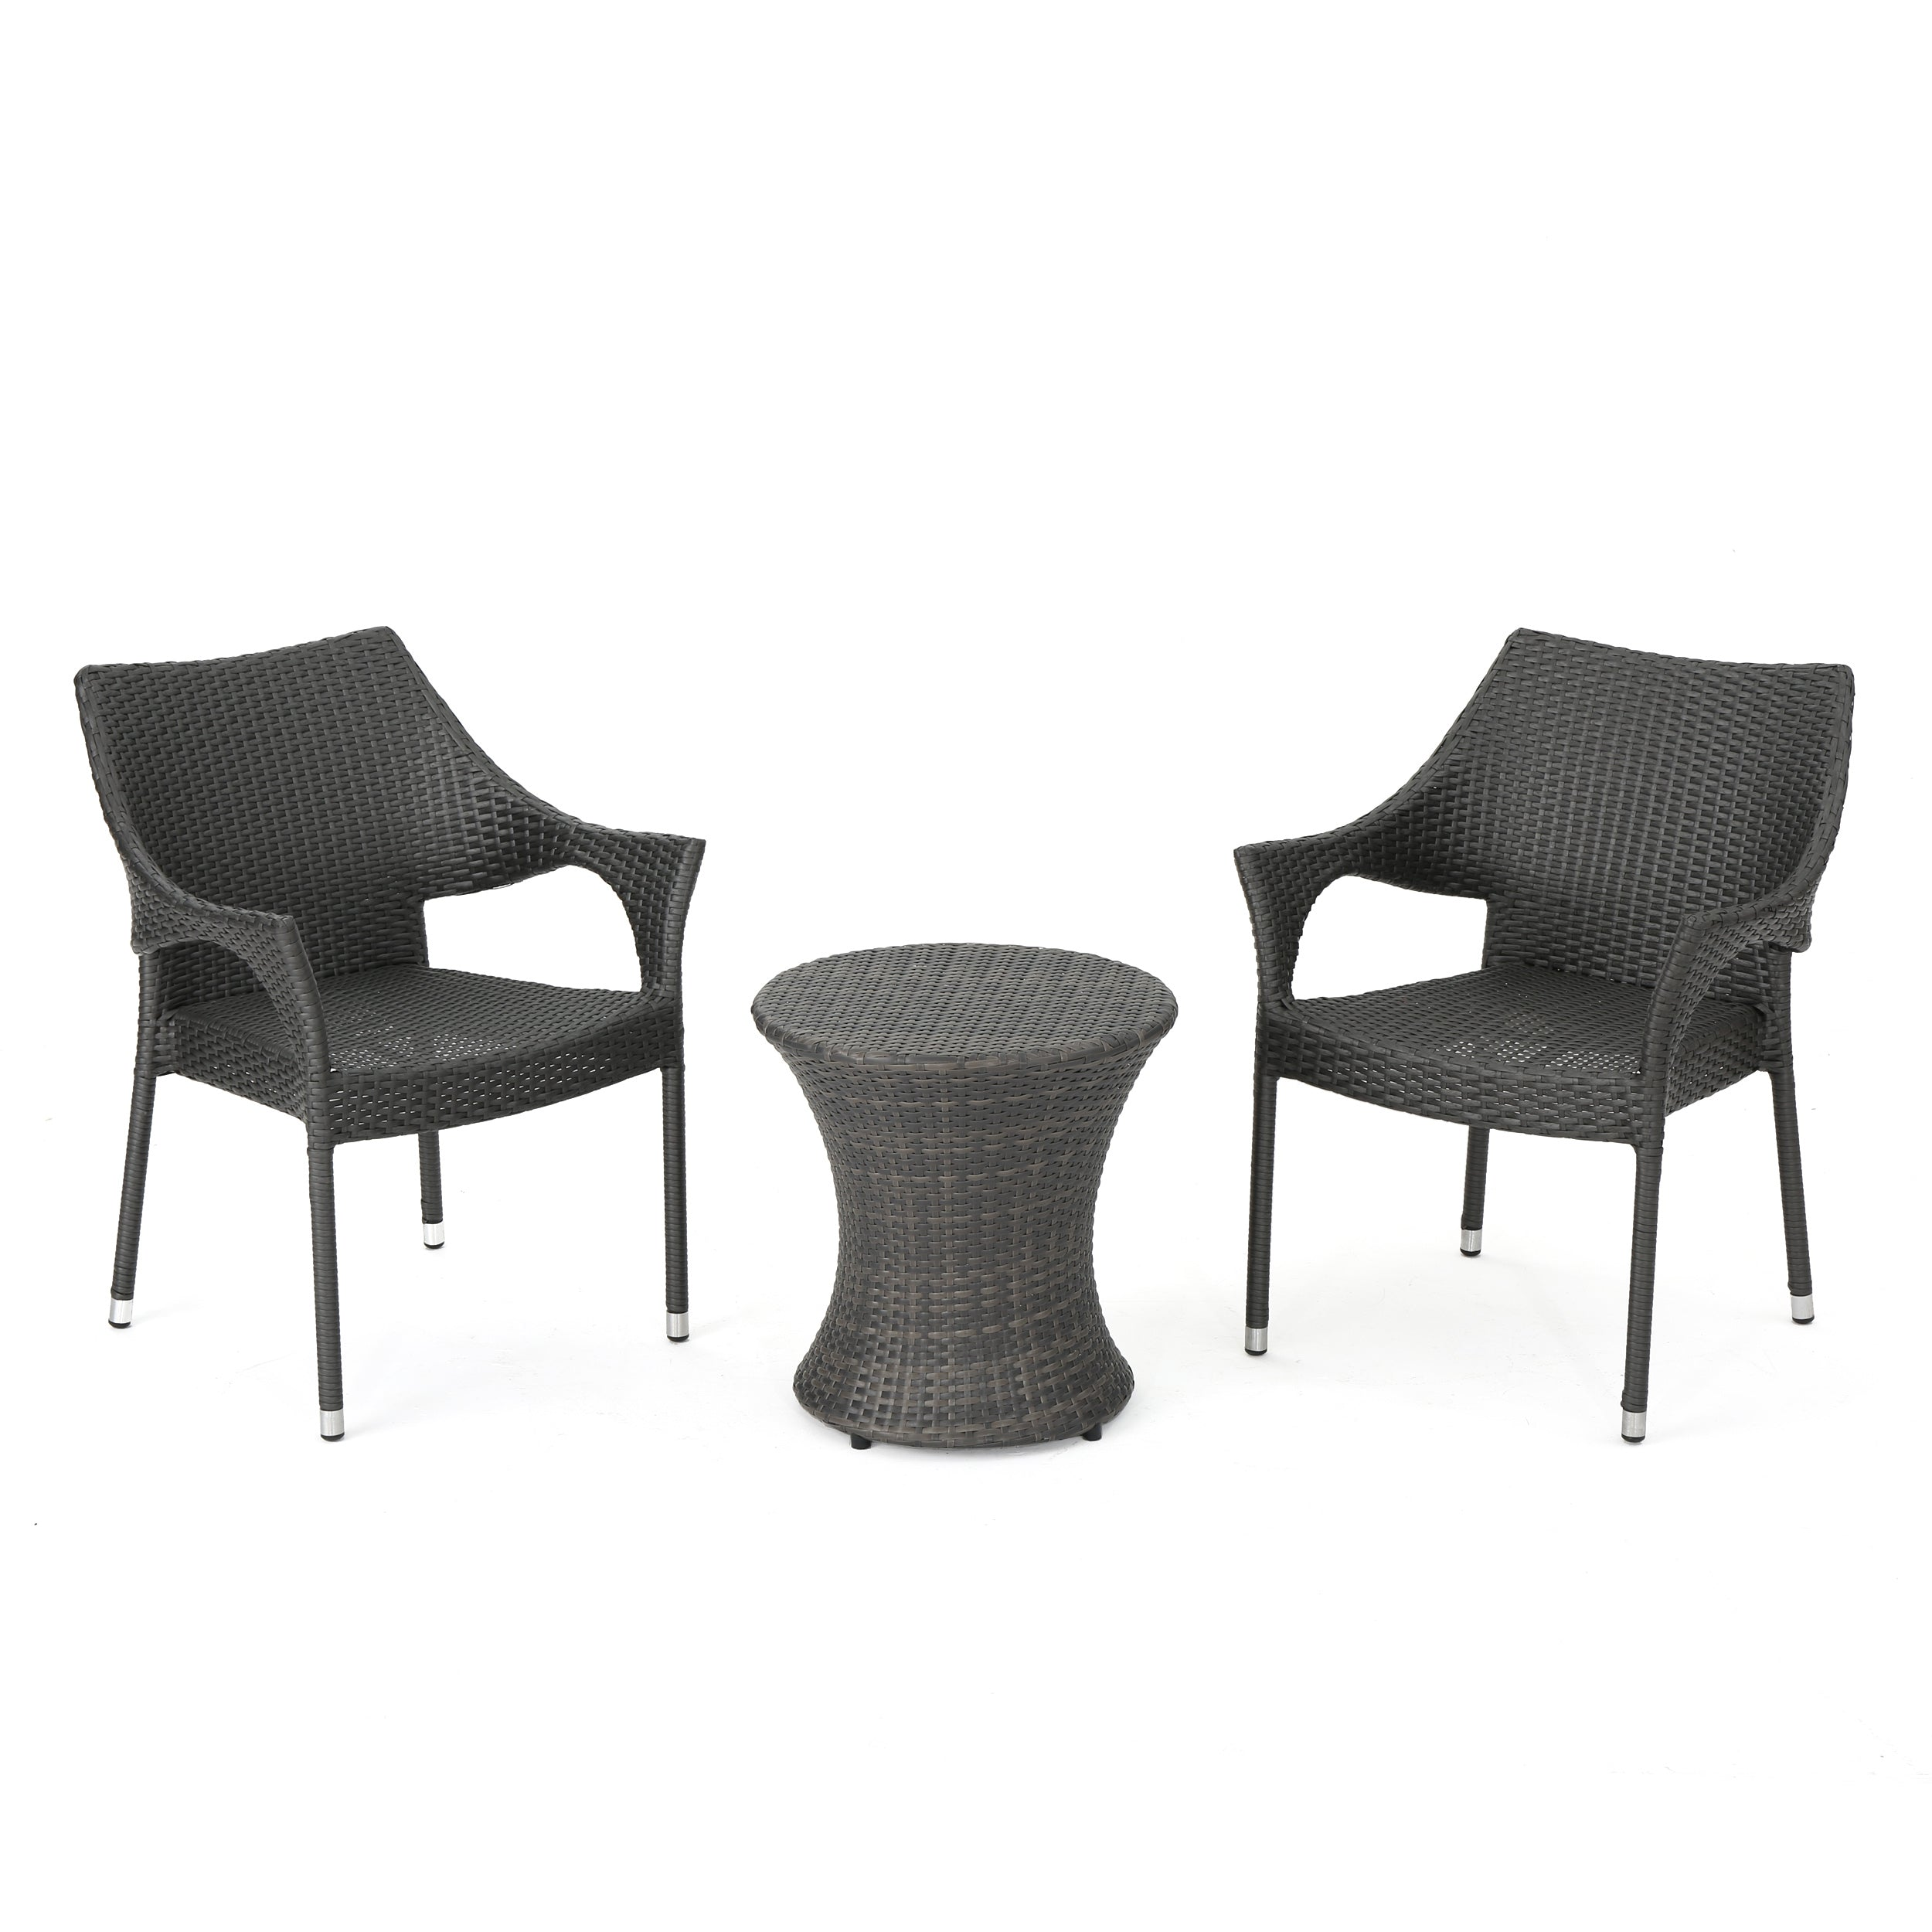 Alfheimr Outdoor 3 Piece Grey Wicker Stacking Chair Chat Set Hour Glass Table